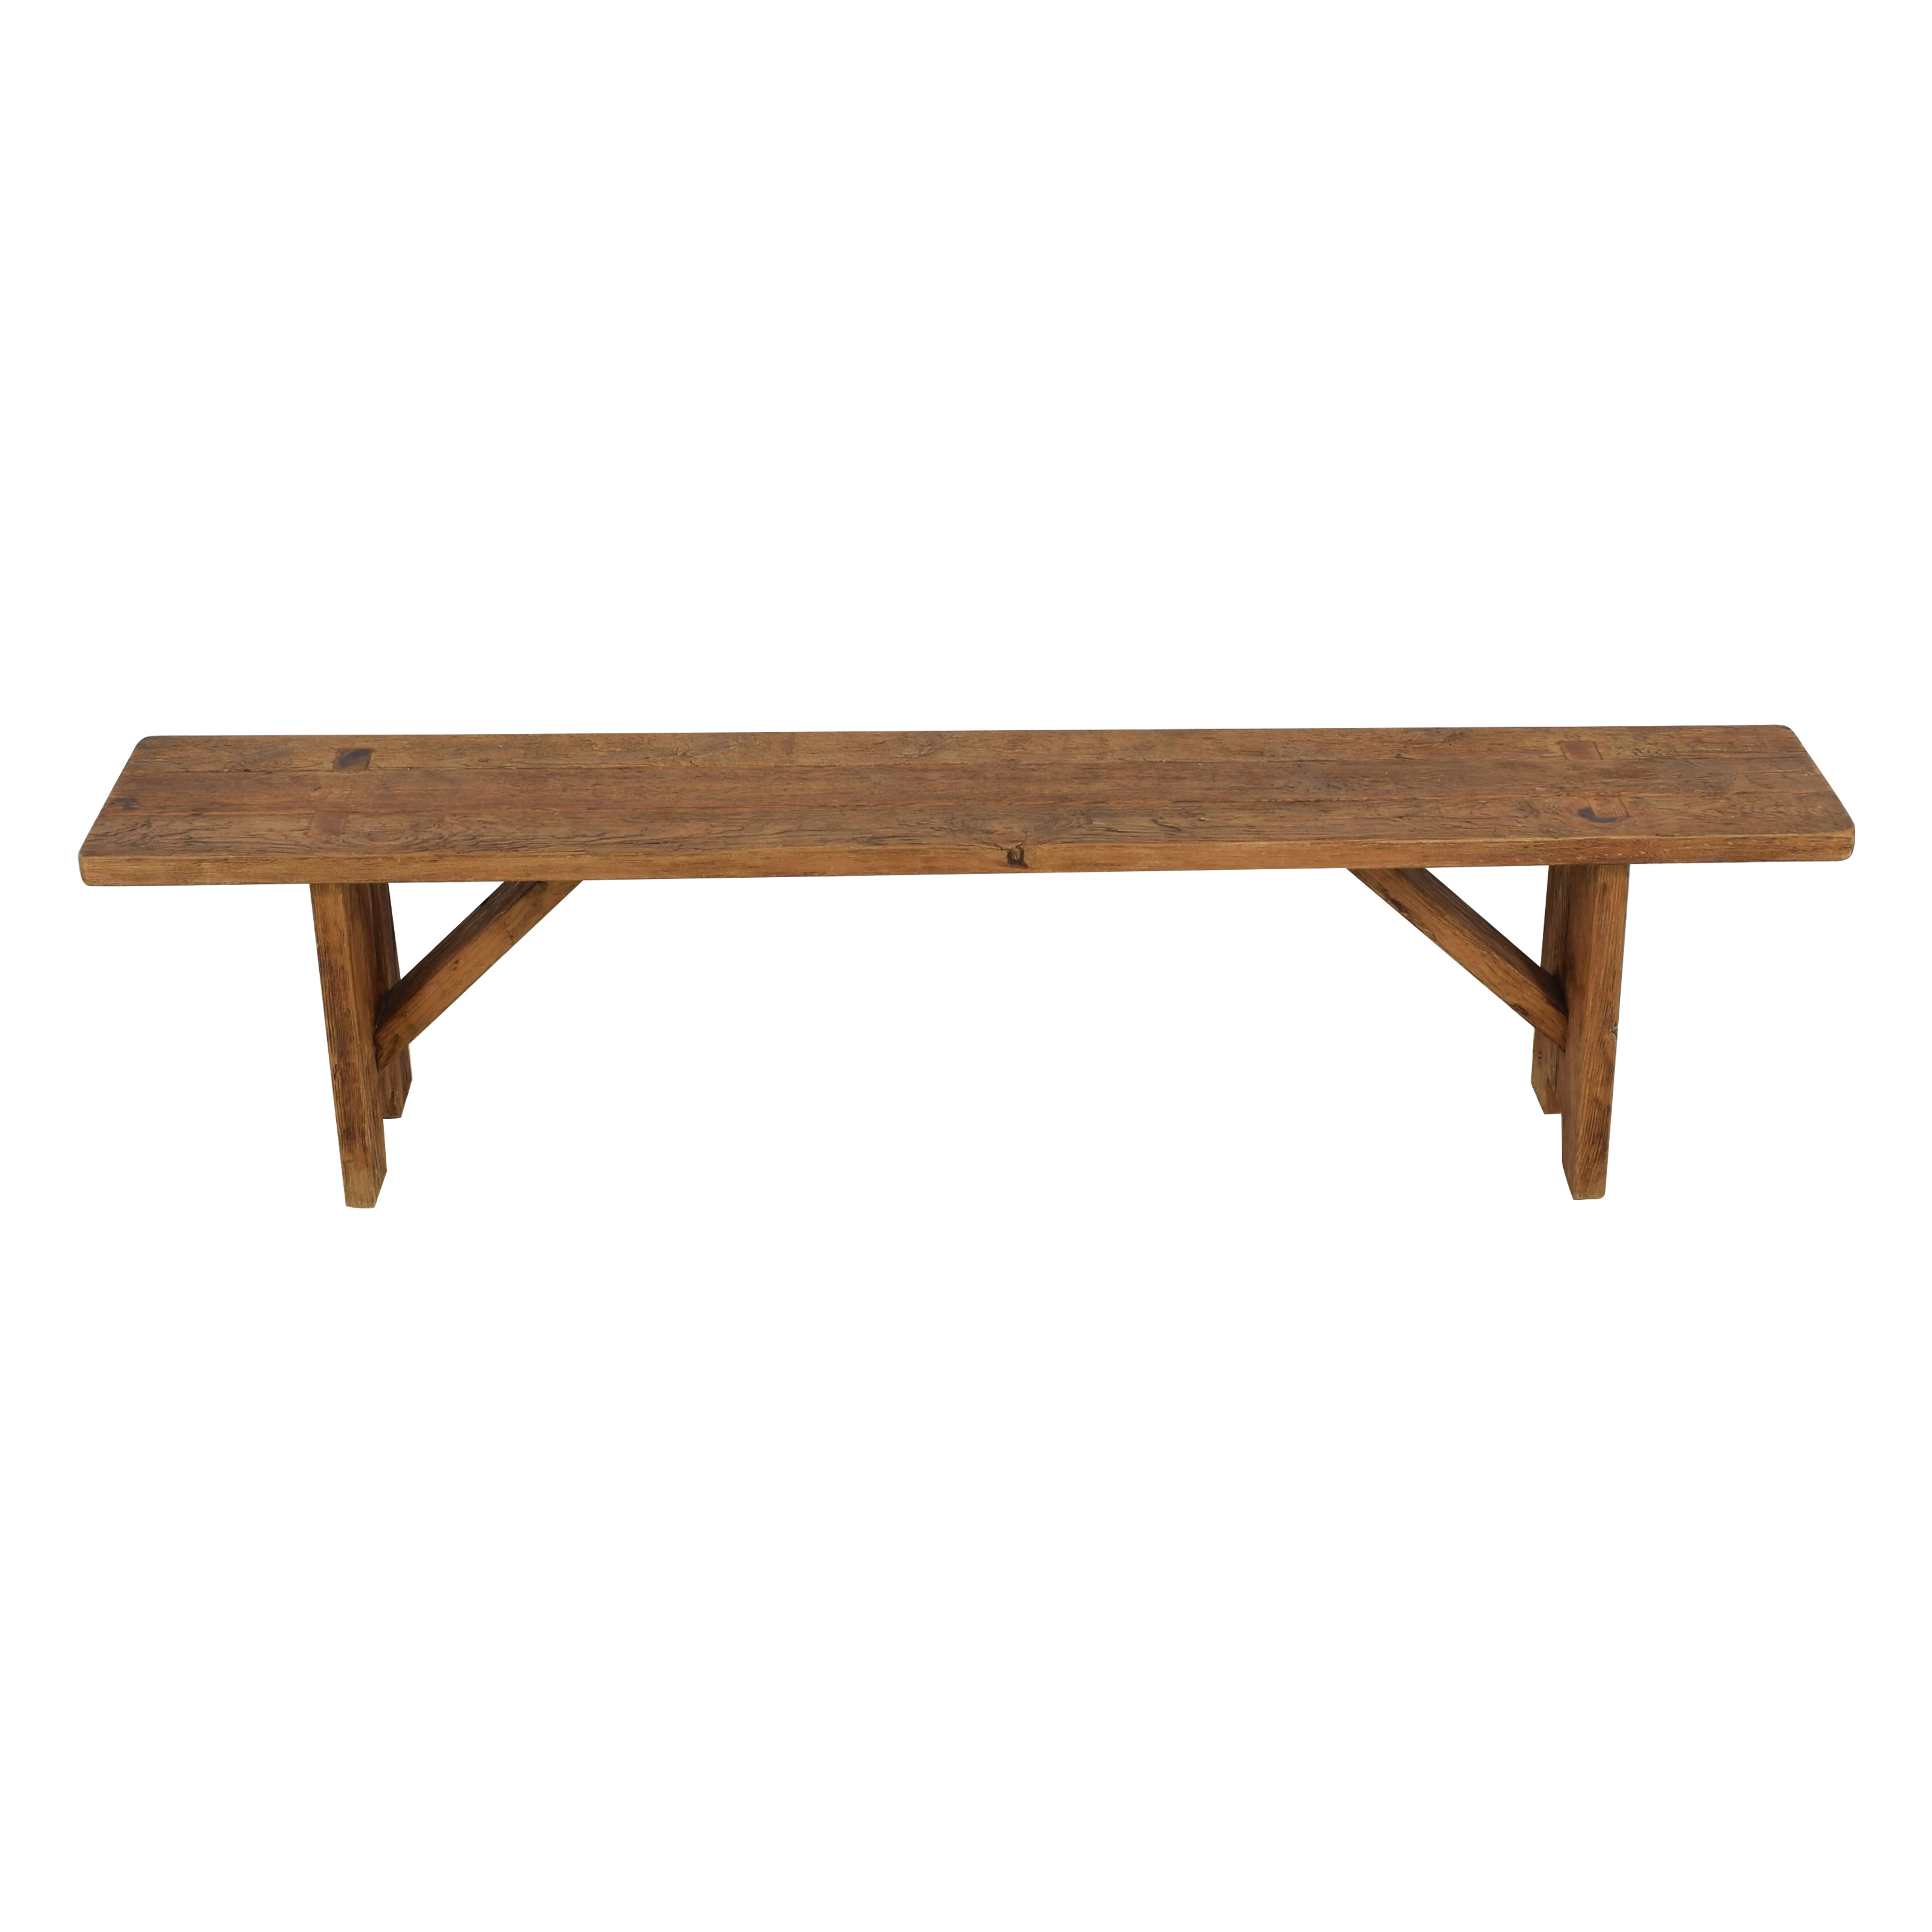 Restoration Hardware Restoration Hardware Barnwood Bench used